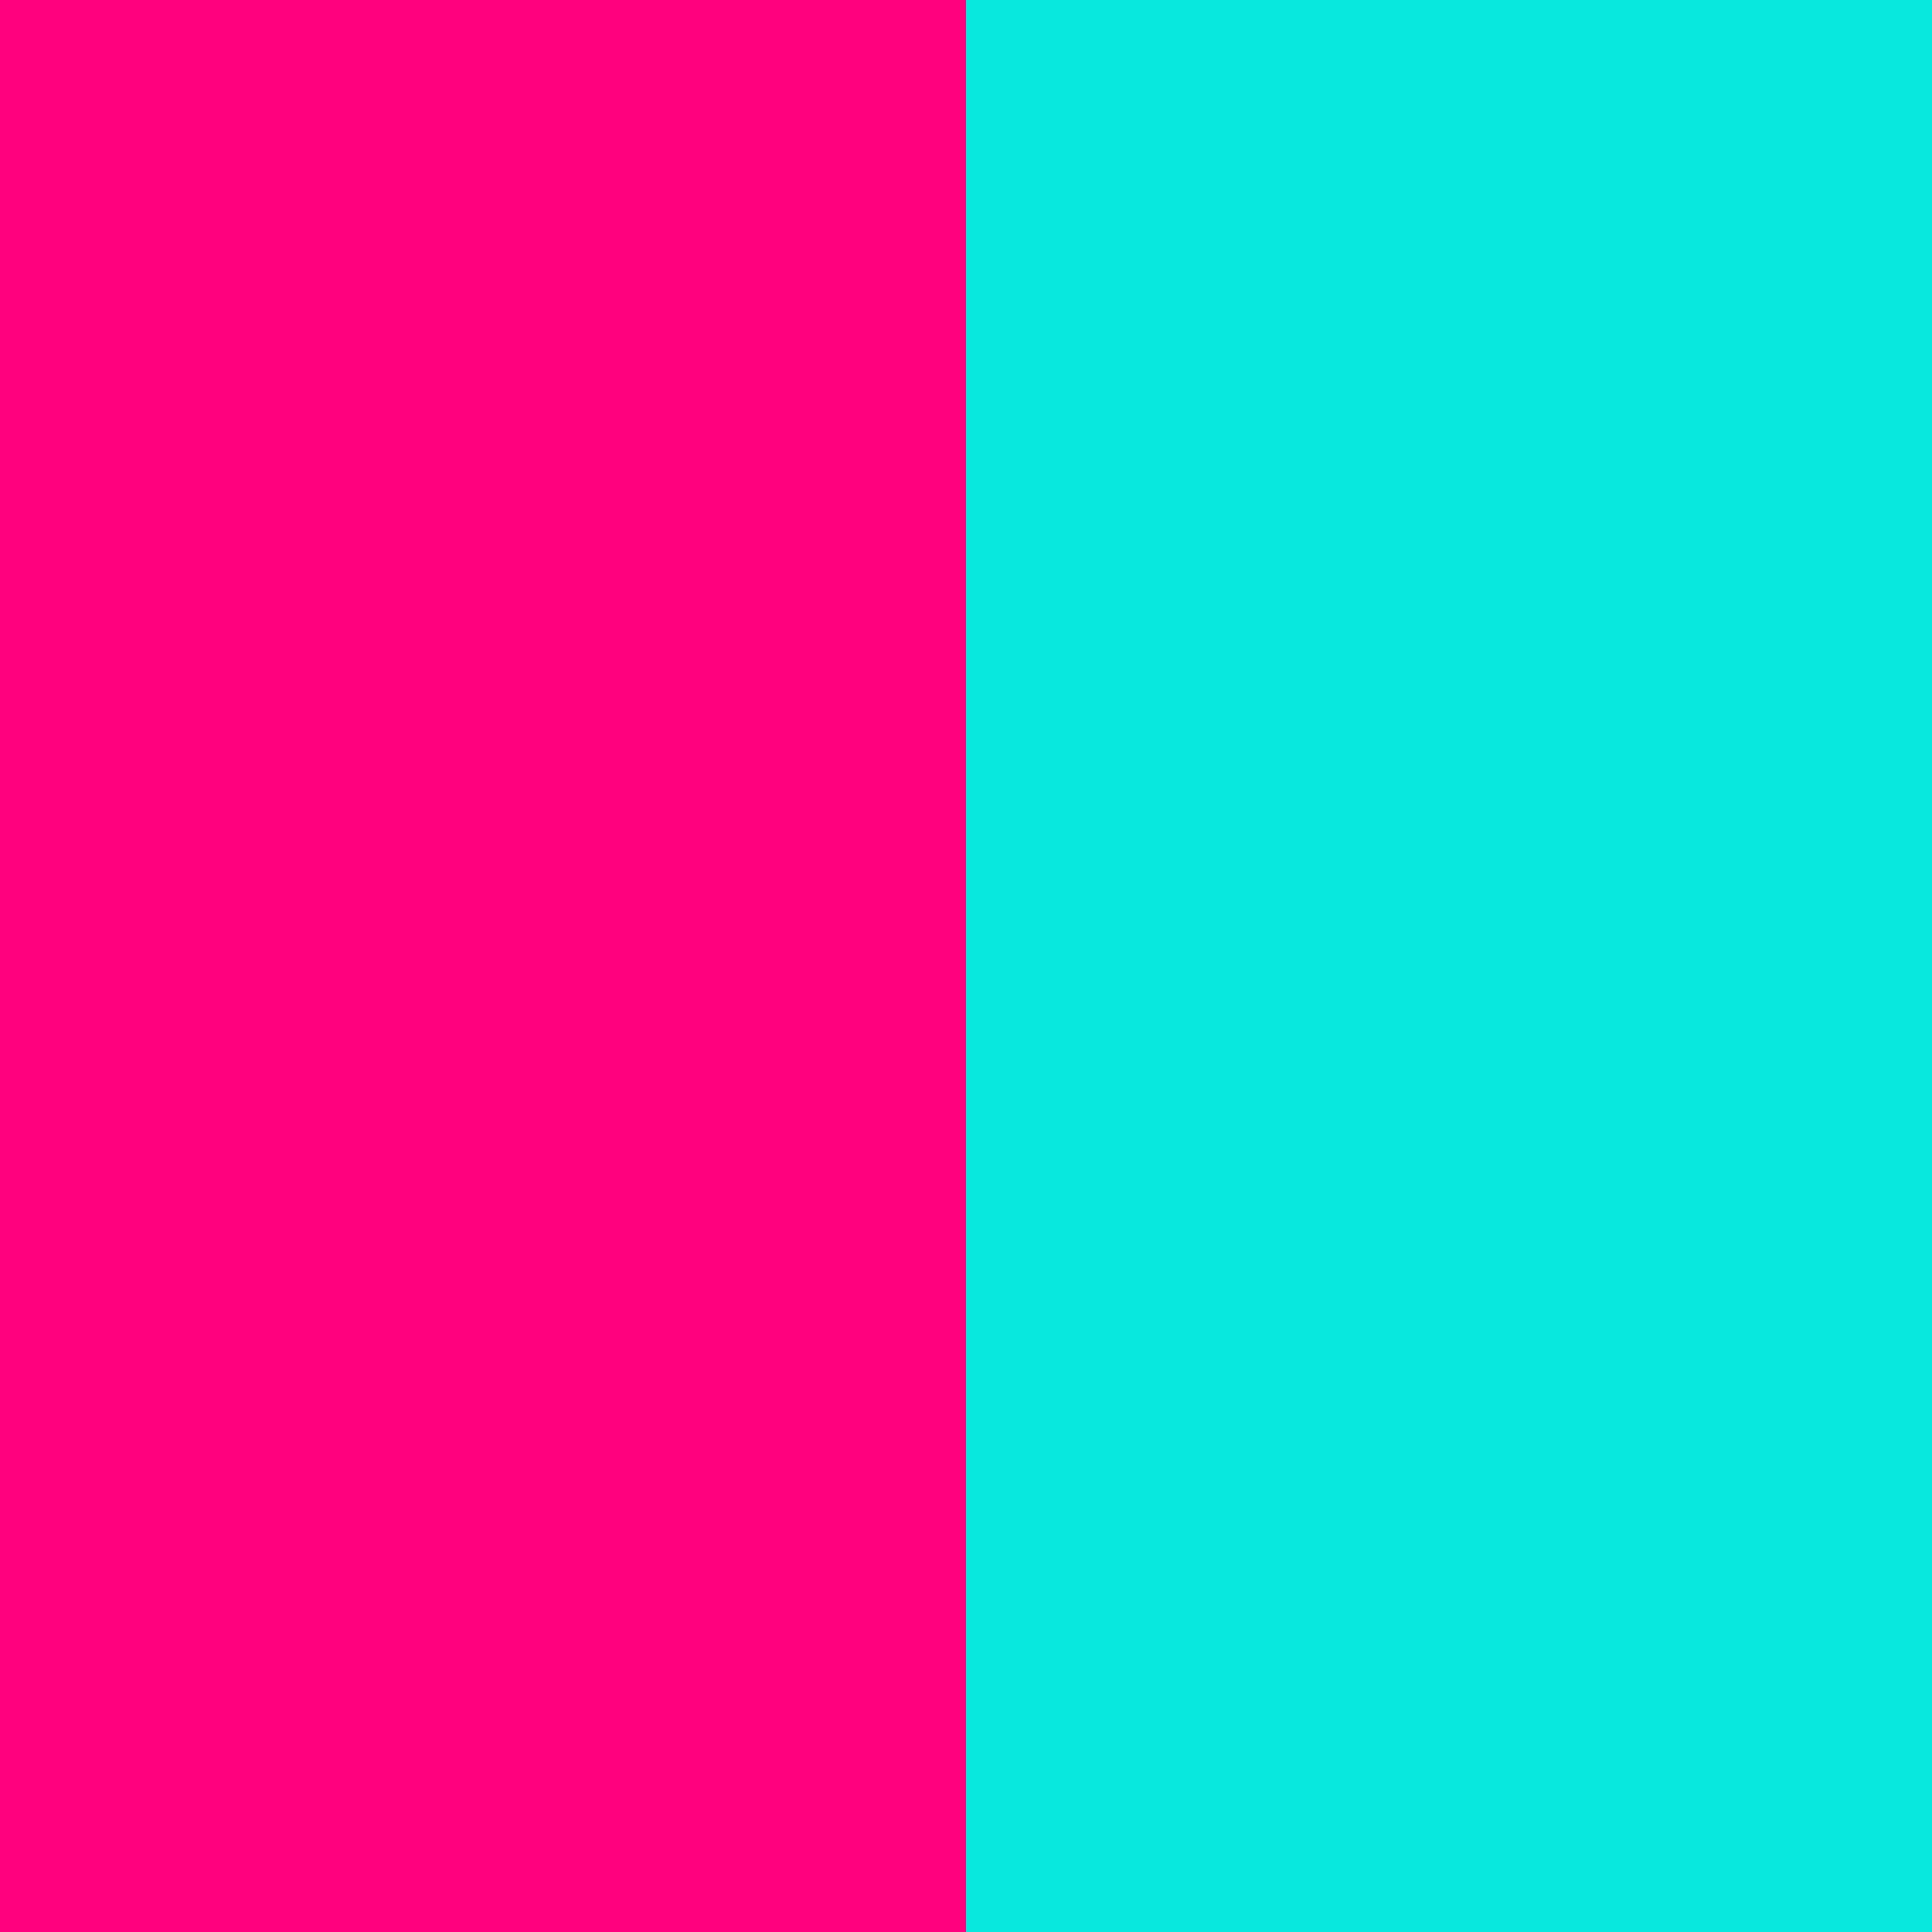 Pink And Turquoise Wallpaper Wallpapersafari